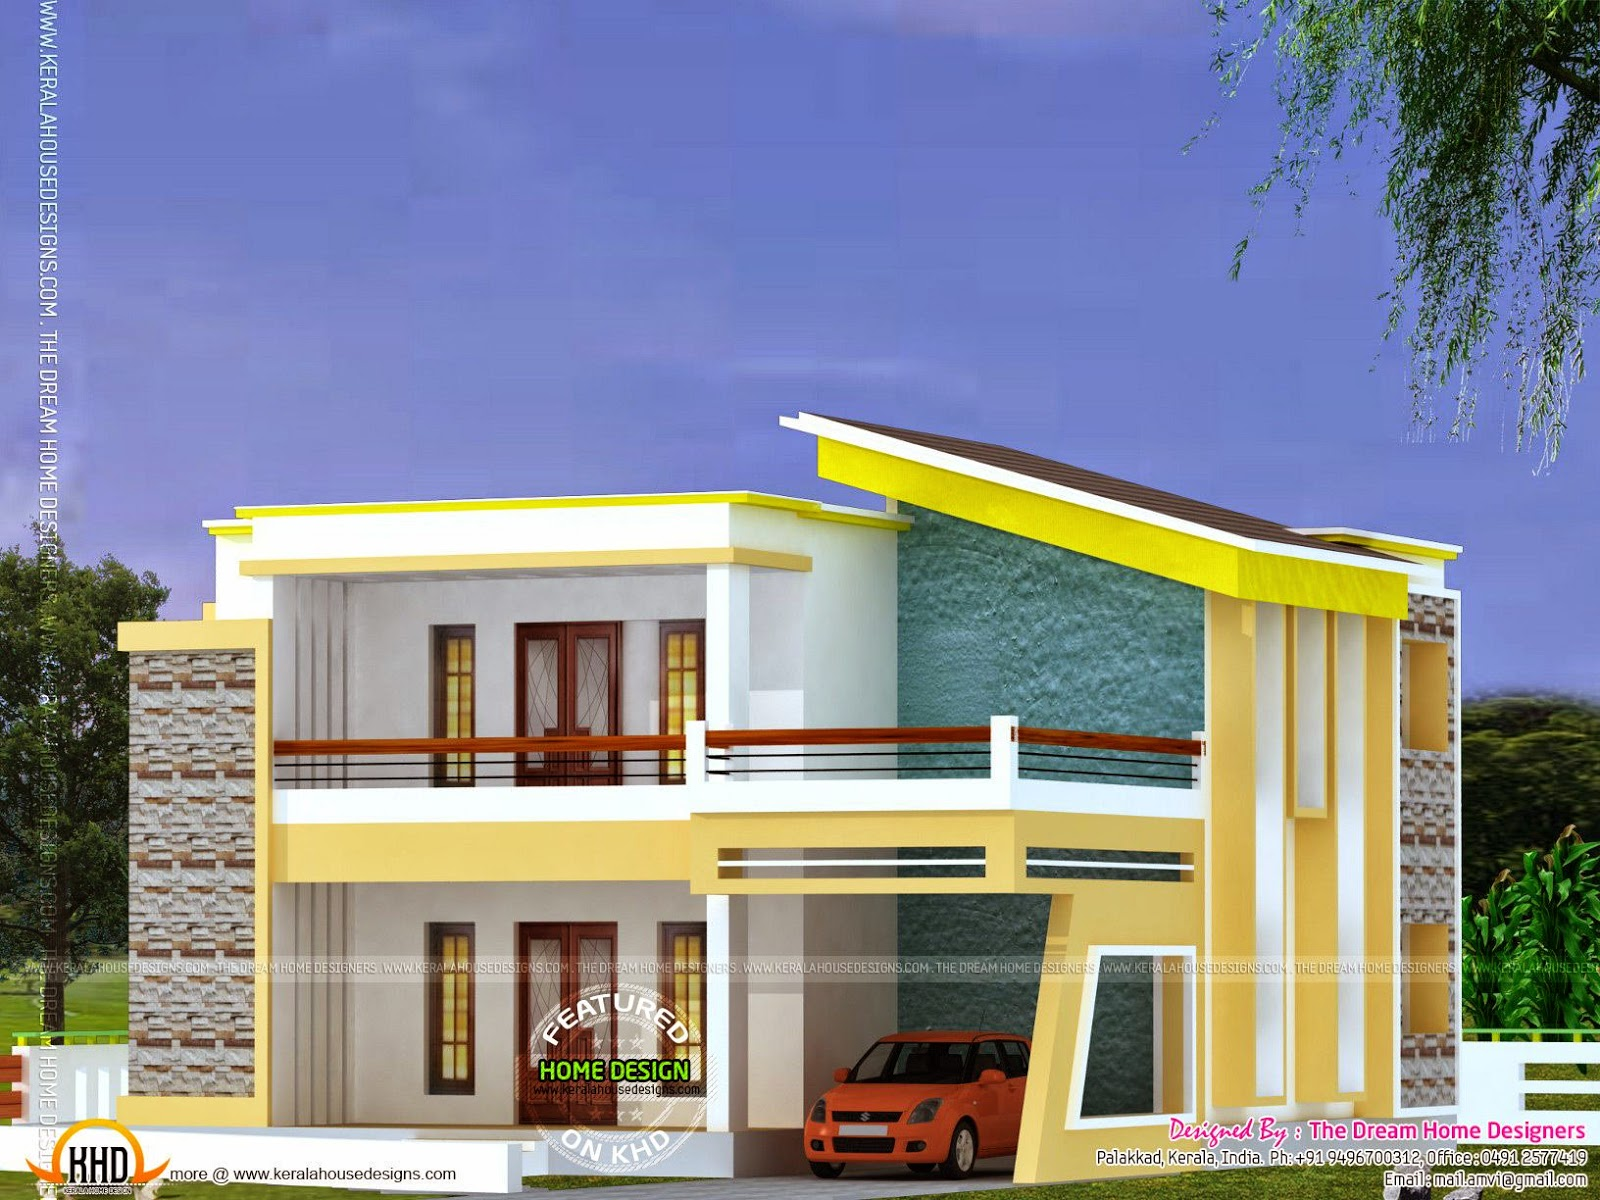 Roof Floor Elevation : Flat roof house plan and elevation kerala home design